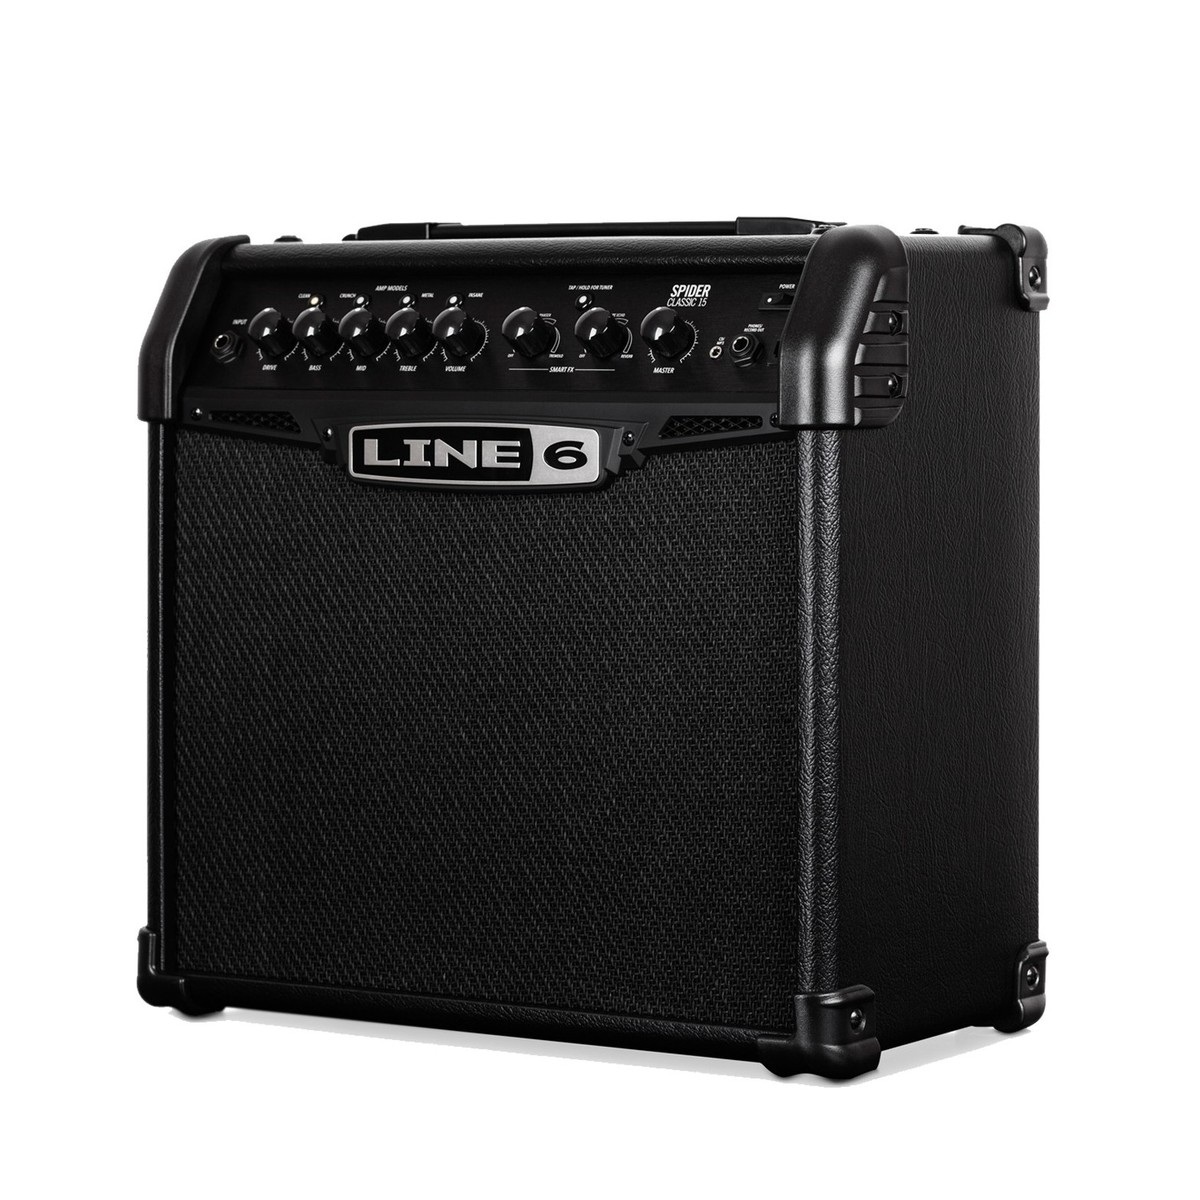 line 6 spider classic 15 guitar combo amp box opened at gear4music. Black Bedroom Furniture Sets. Home Design Ideas